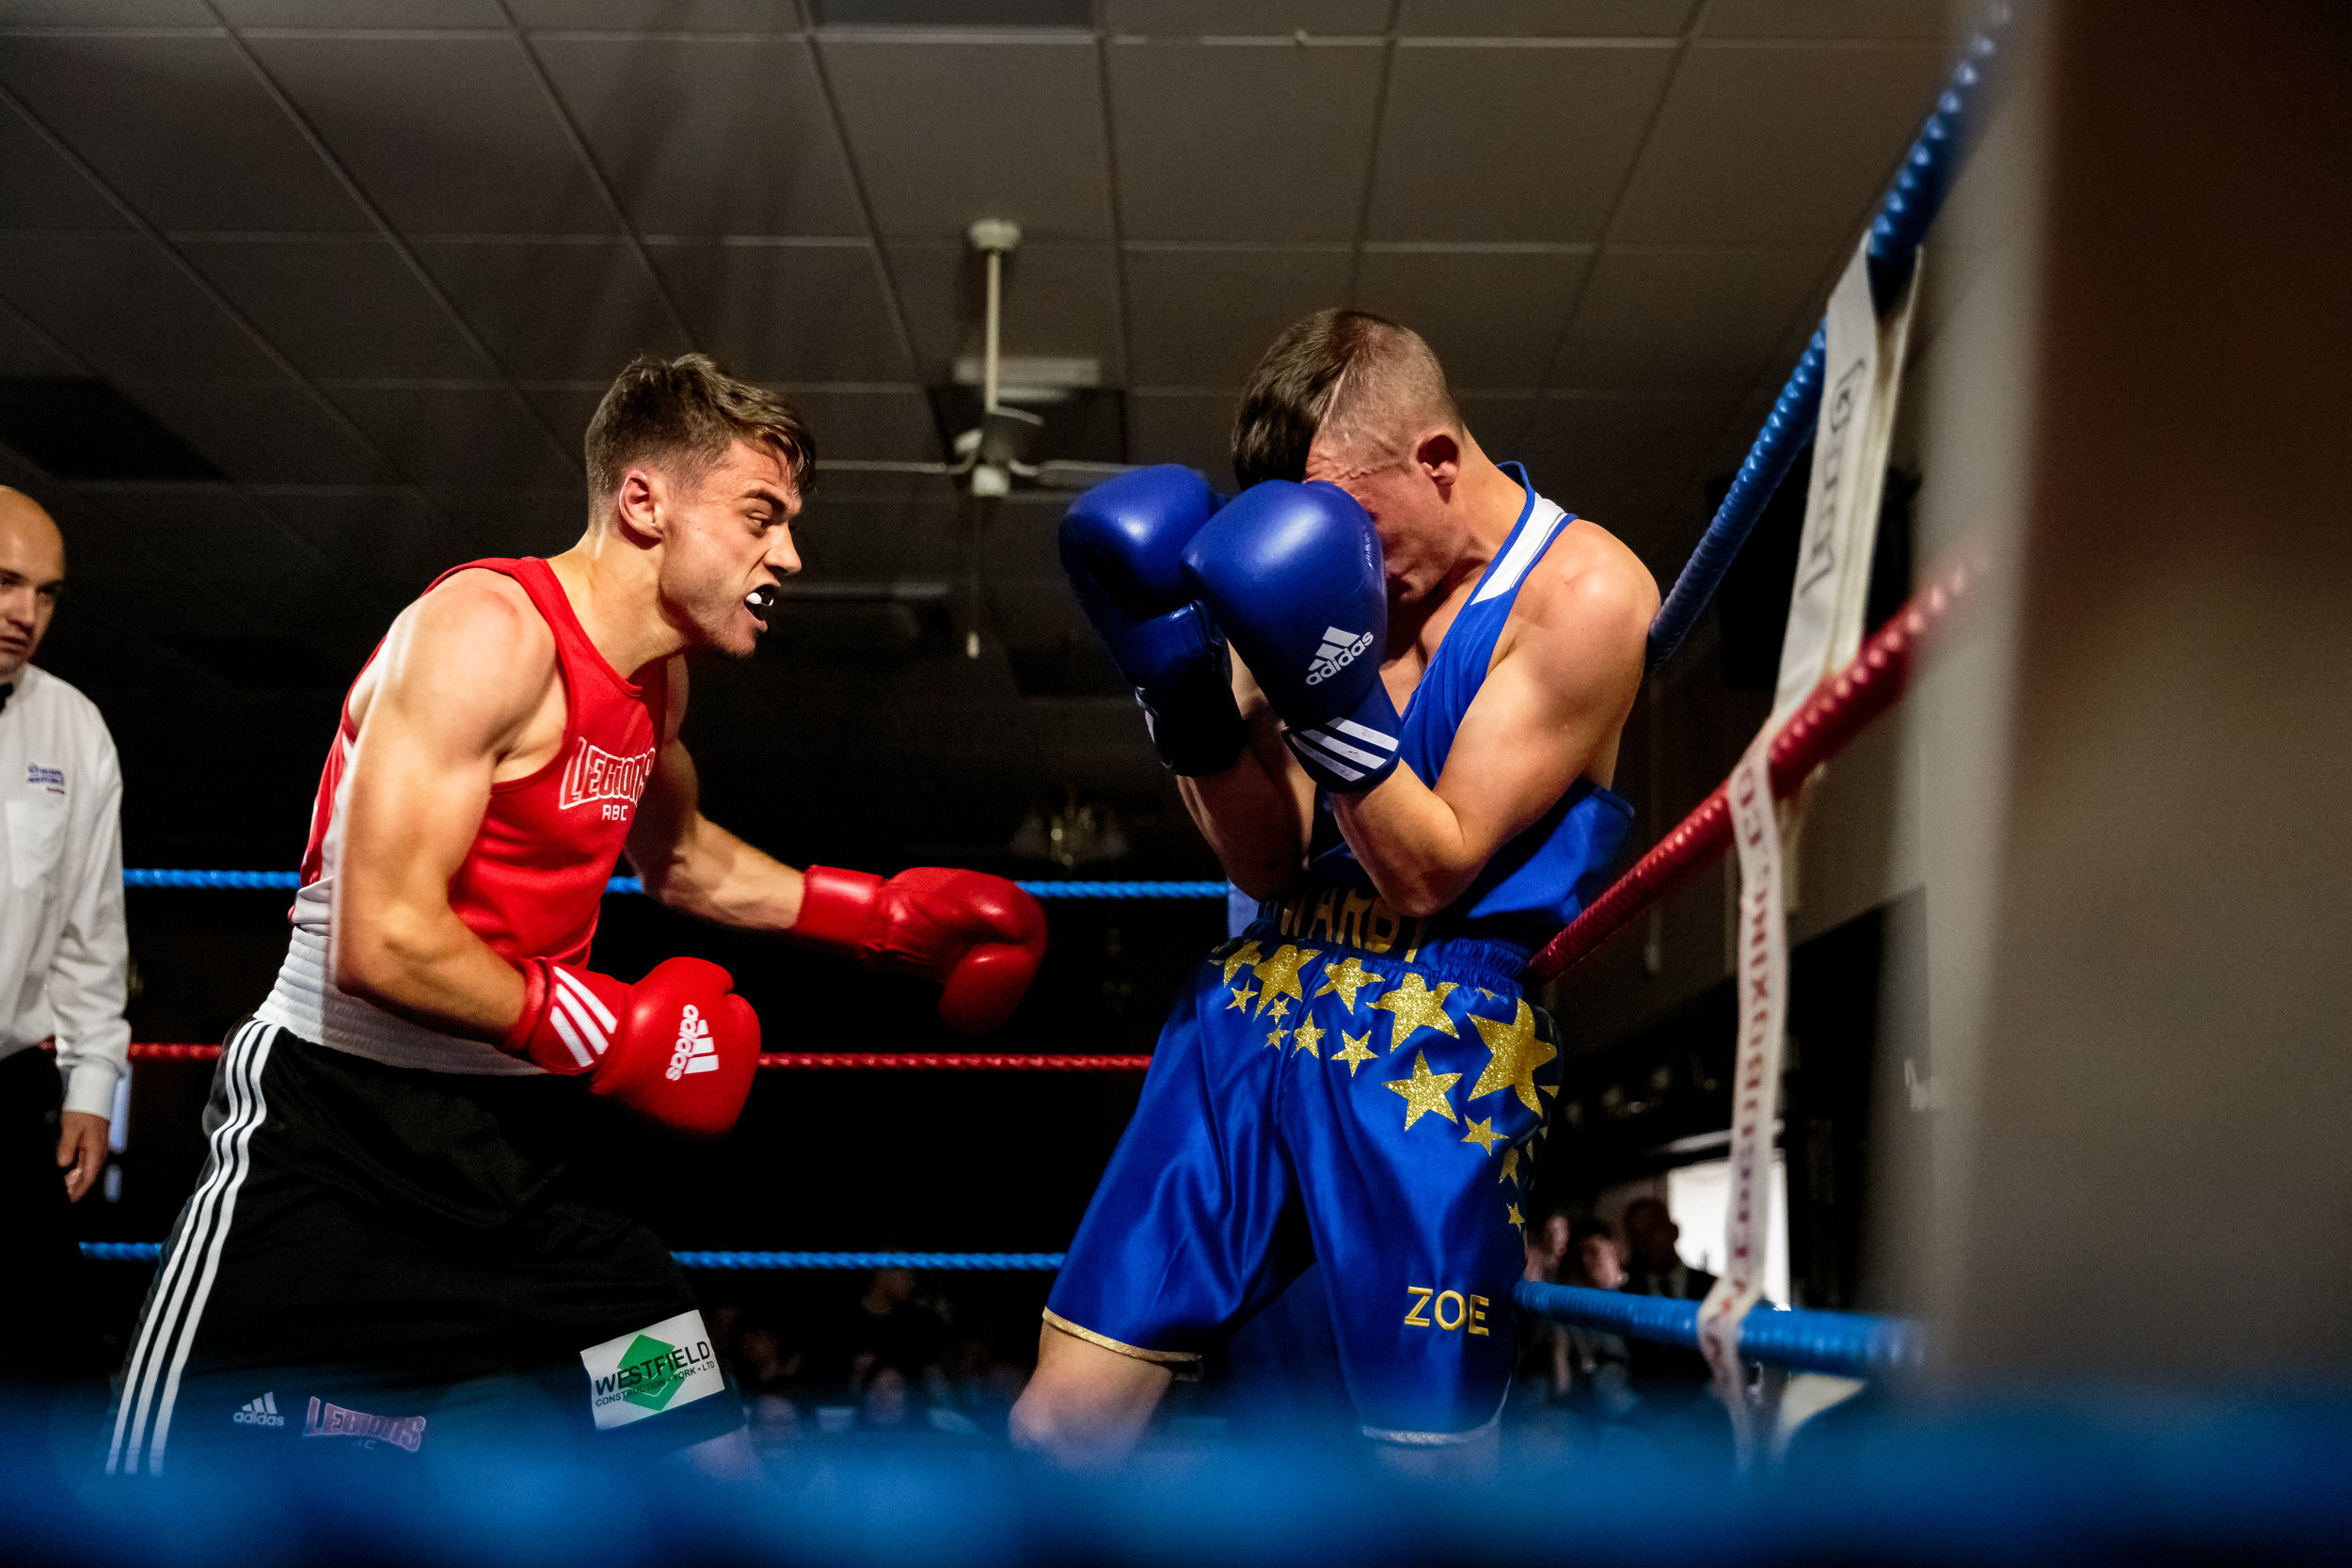 Boxing Photography by Chris Kendall